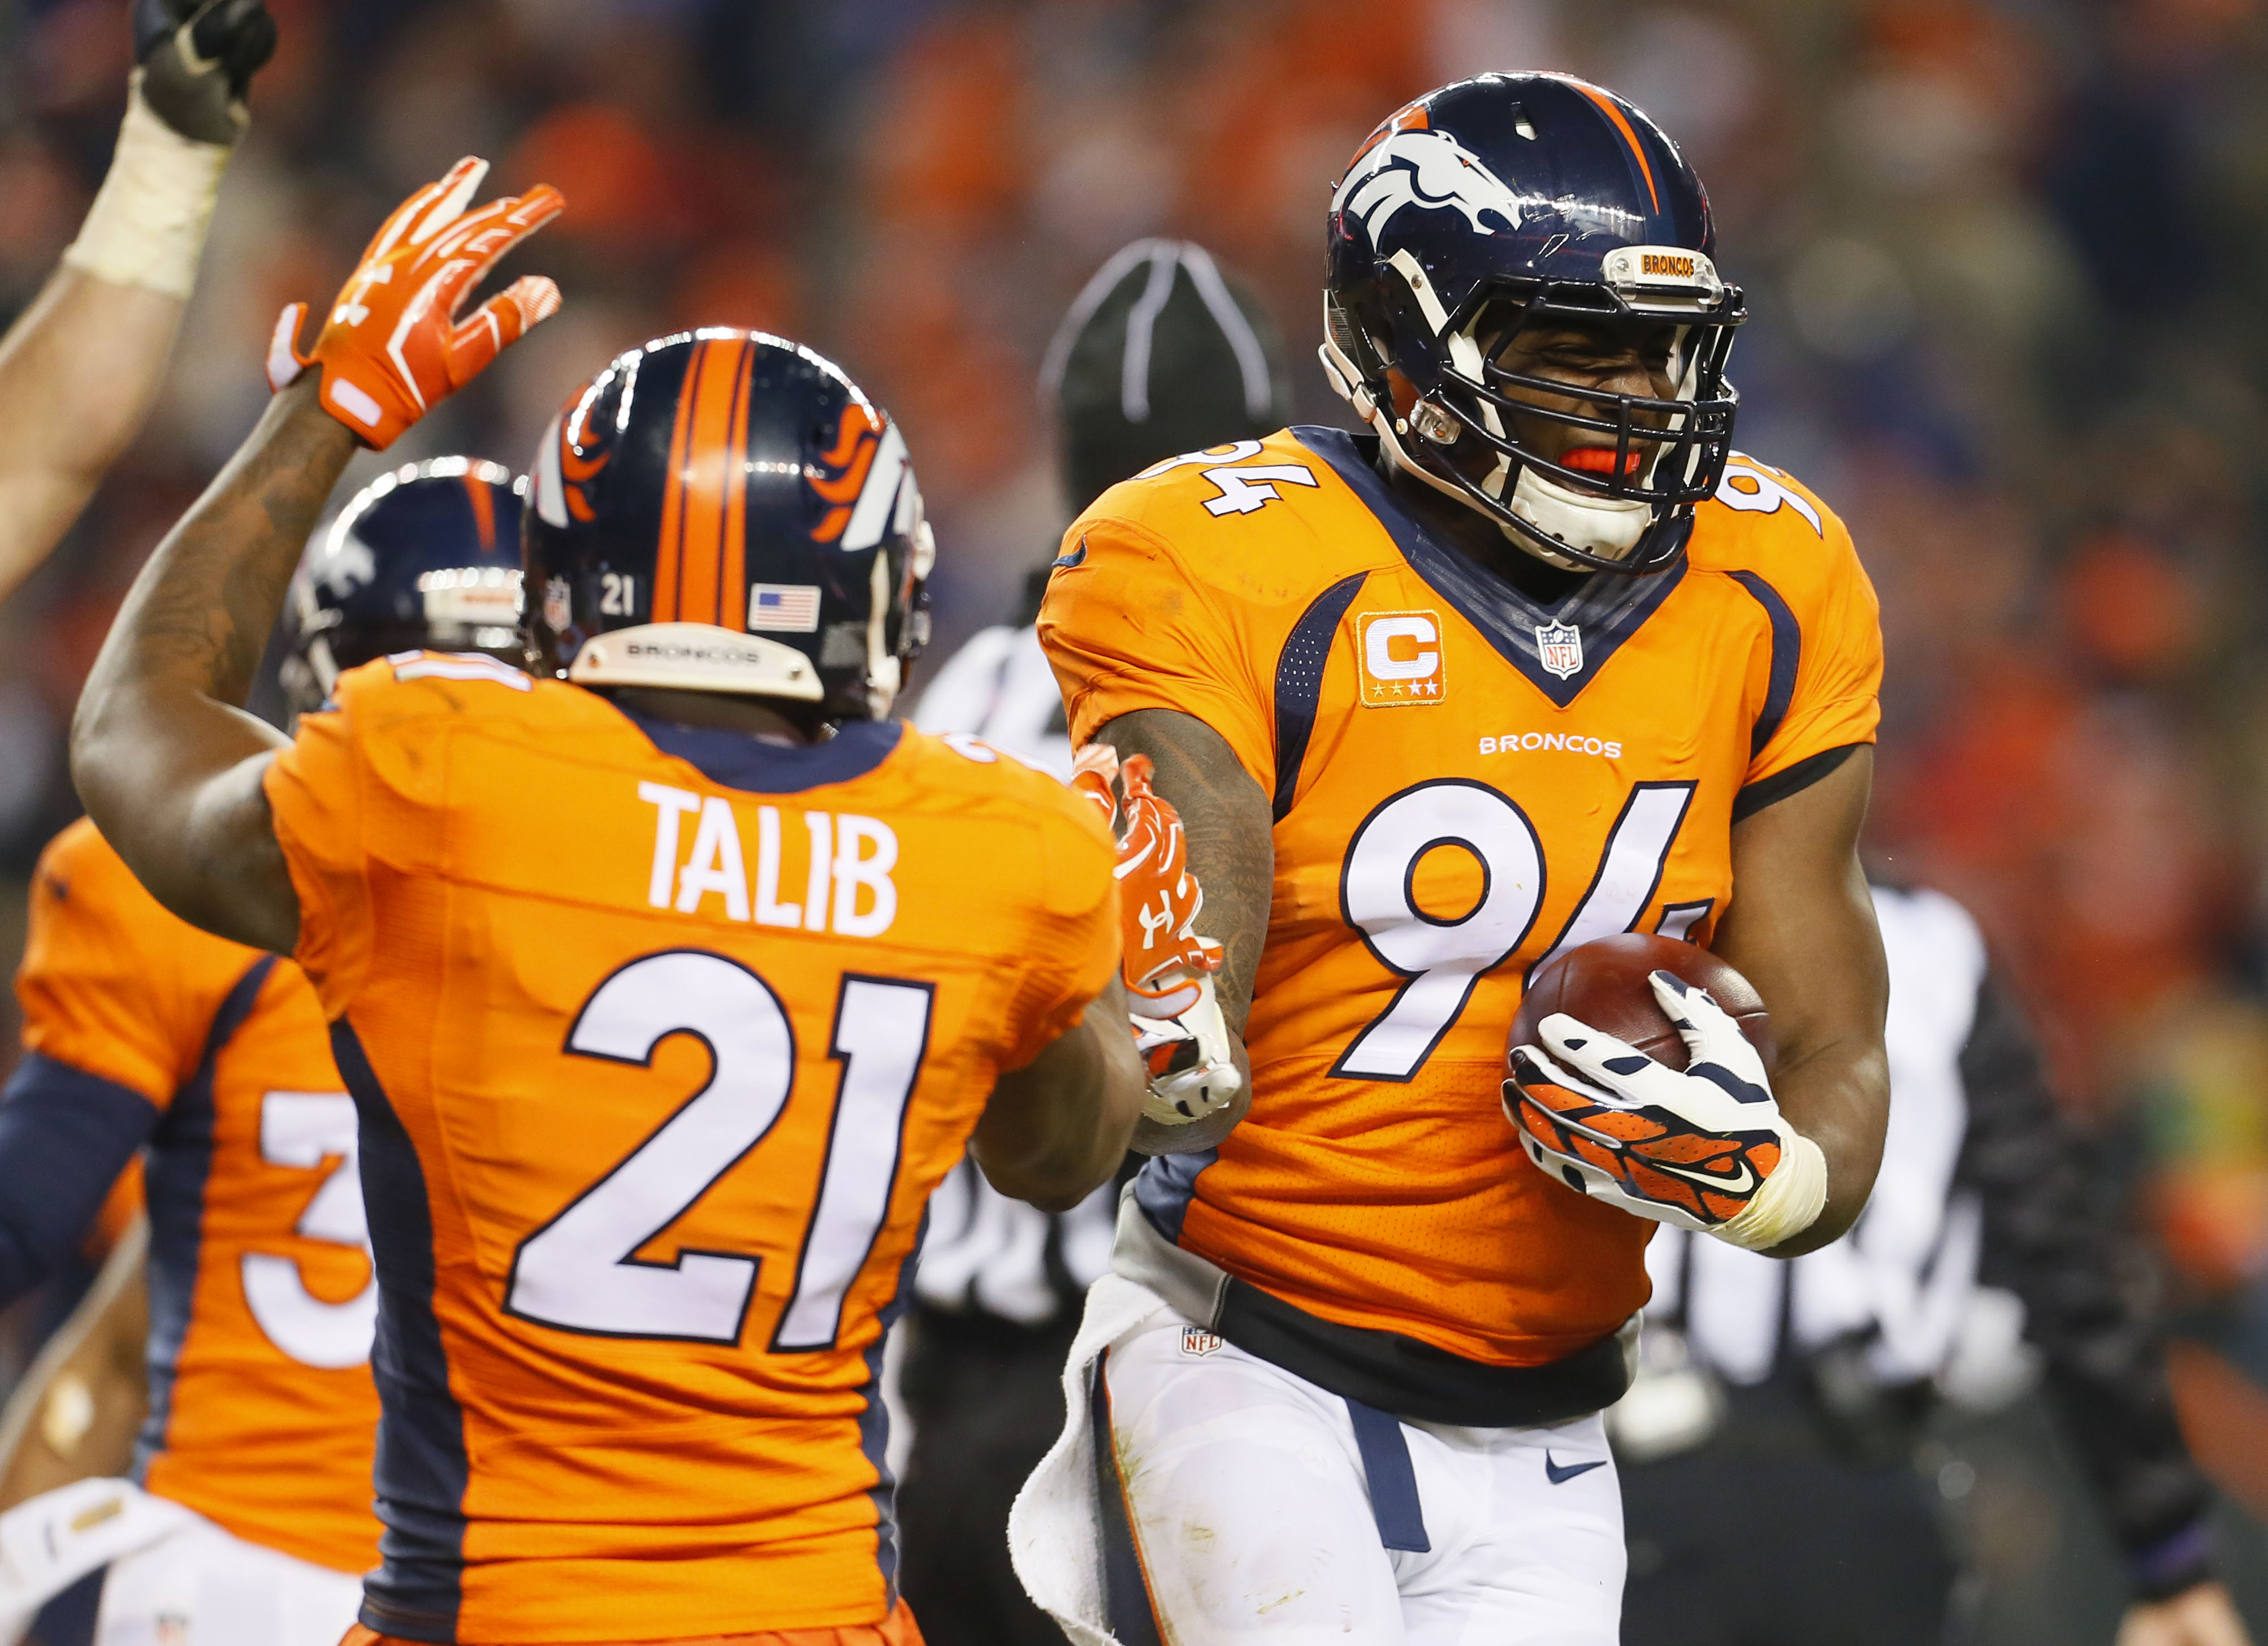 Denver Broncos outside linebacker DeMarcus Ware (94) celebrates his fumble recovery for the win after an NFL football game against the Cincinnati Bengals, Monday, Dec. 28, 2015, in Denver. The Broncos won 20-17 in overtime. (AP Photo/Joe Mahoney)